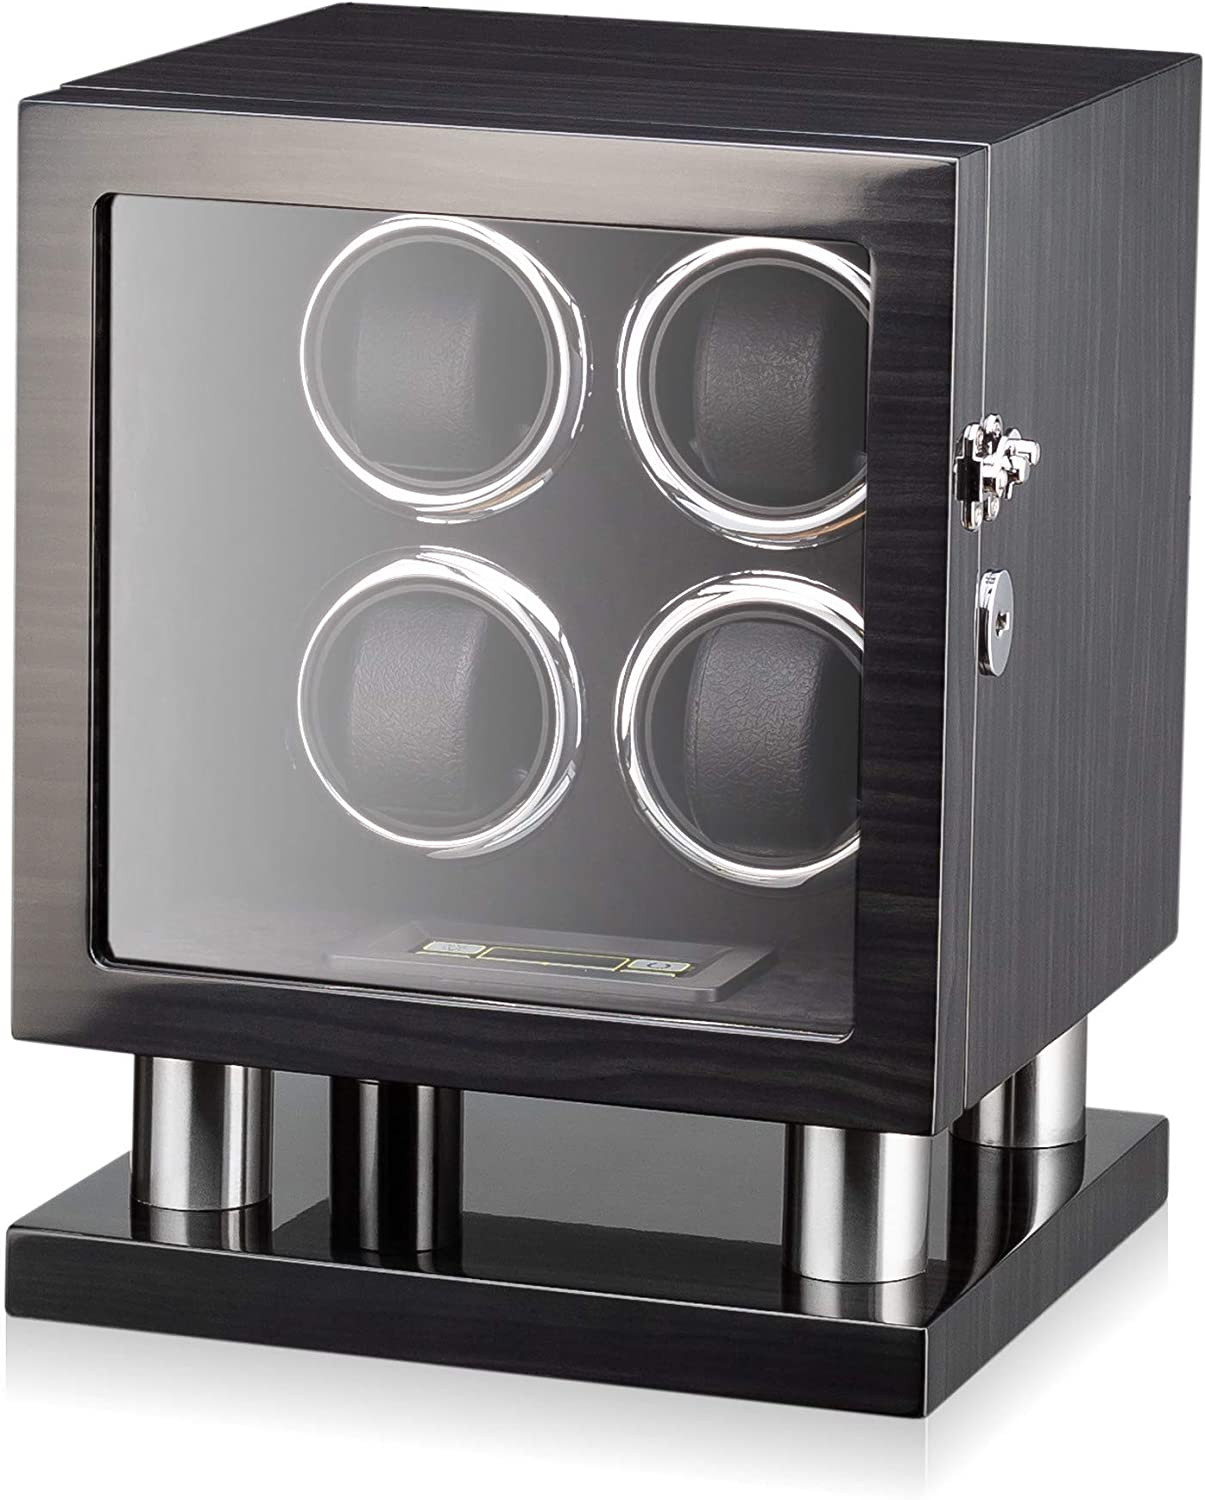 Super beauty product restock quality top Watch Winder for 4 outlet Watches with LED Backlight M Display LCD and